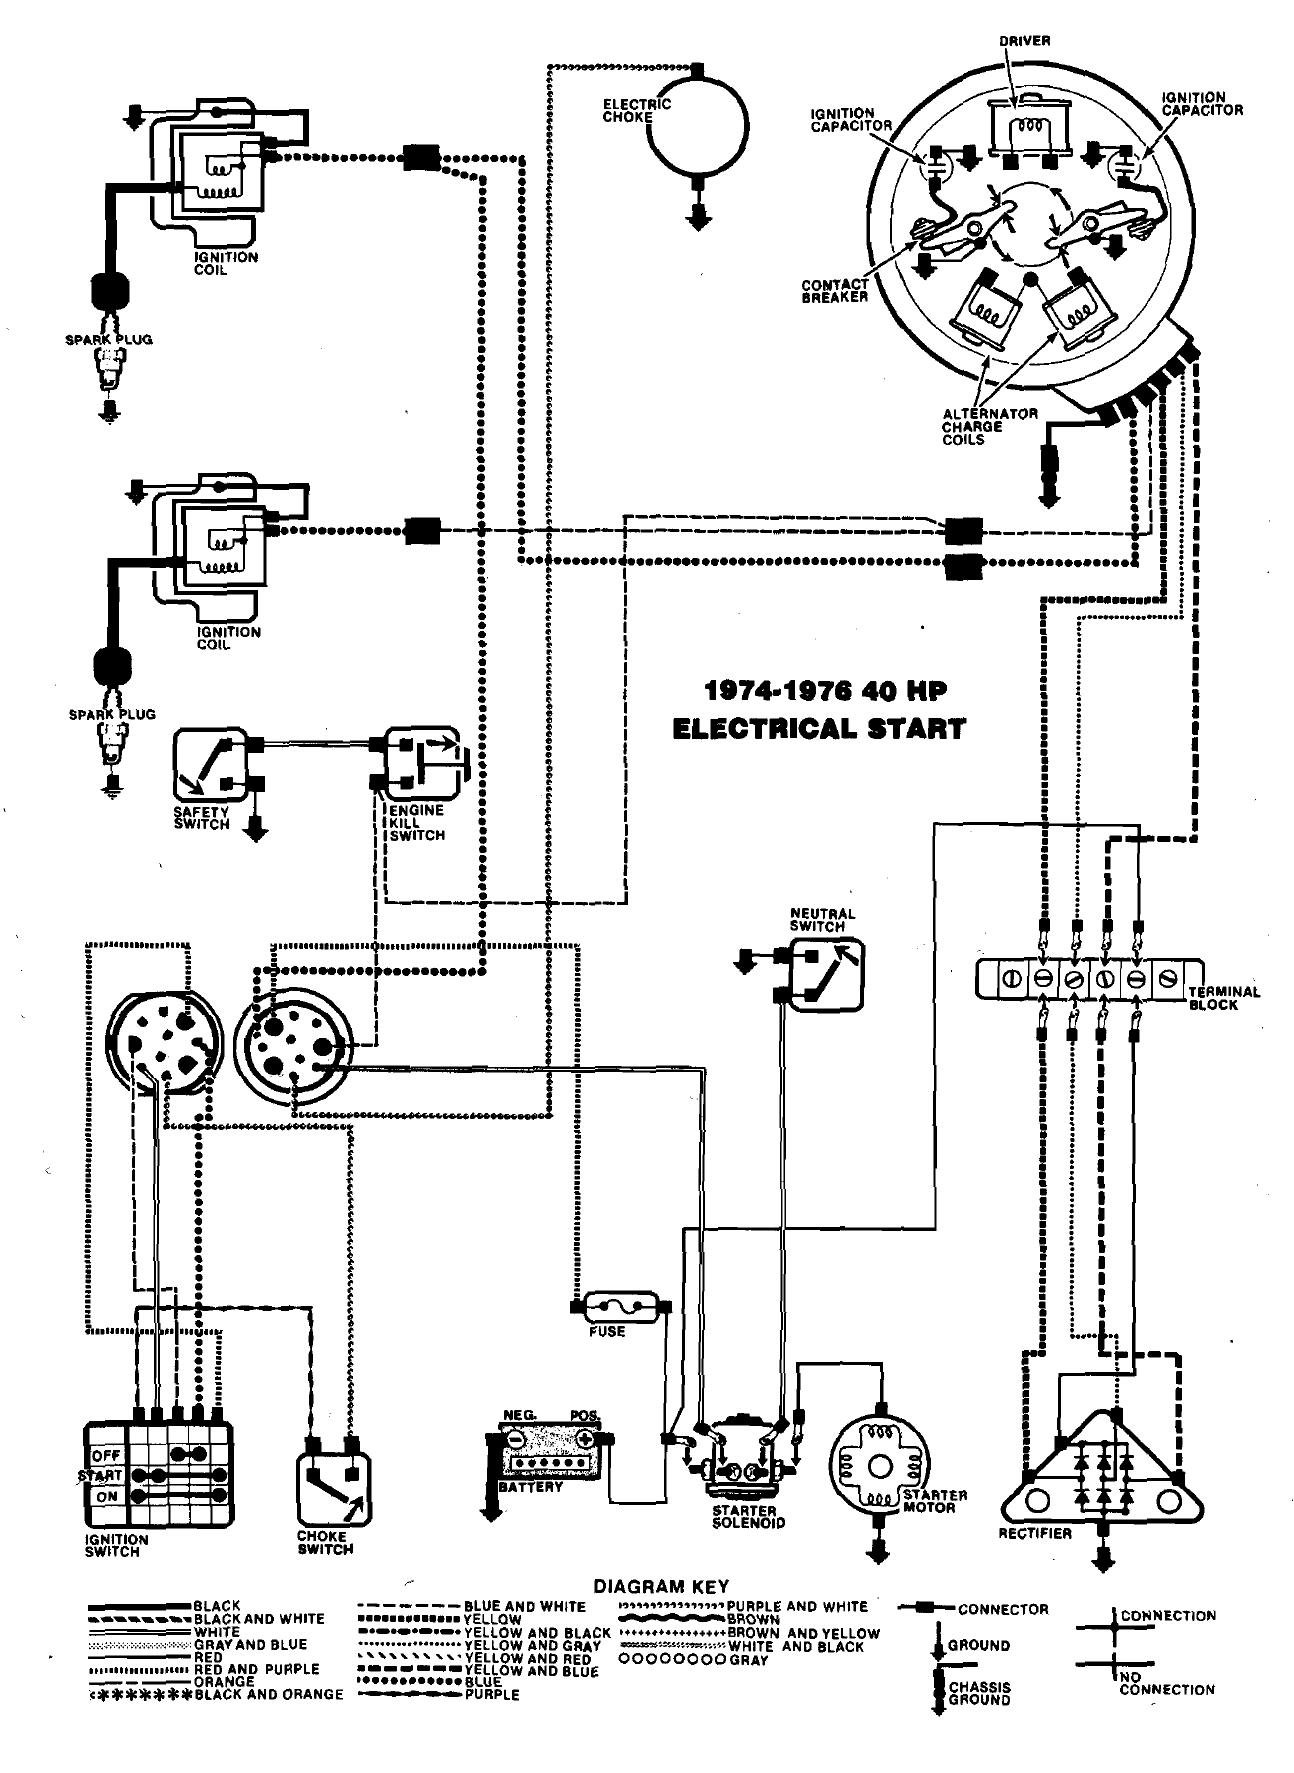 wiring diagram for 1974 mercury outboard motor wiring wiring diagram 1979 johnson outboard the wiring diagram on wiring diagram for 1974 mercury outboard motor